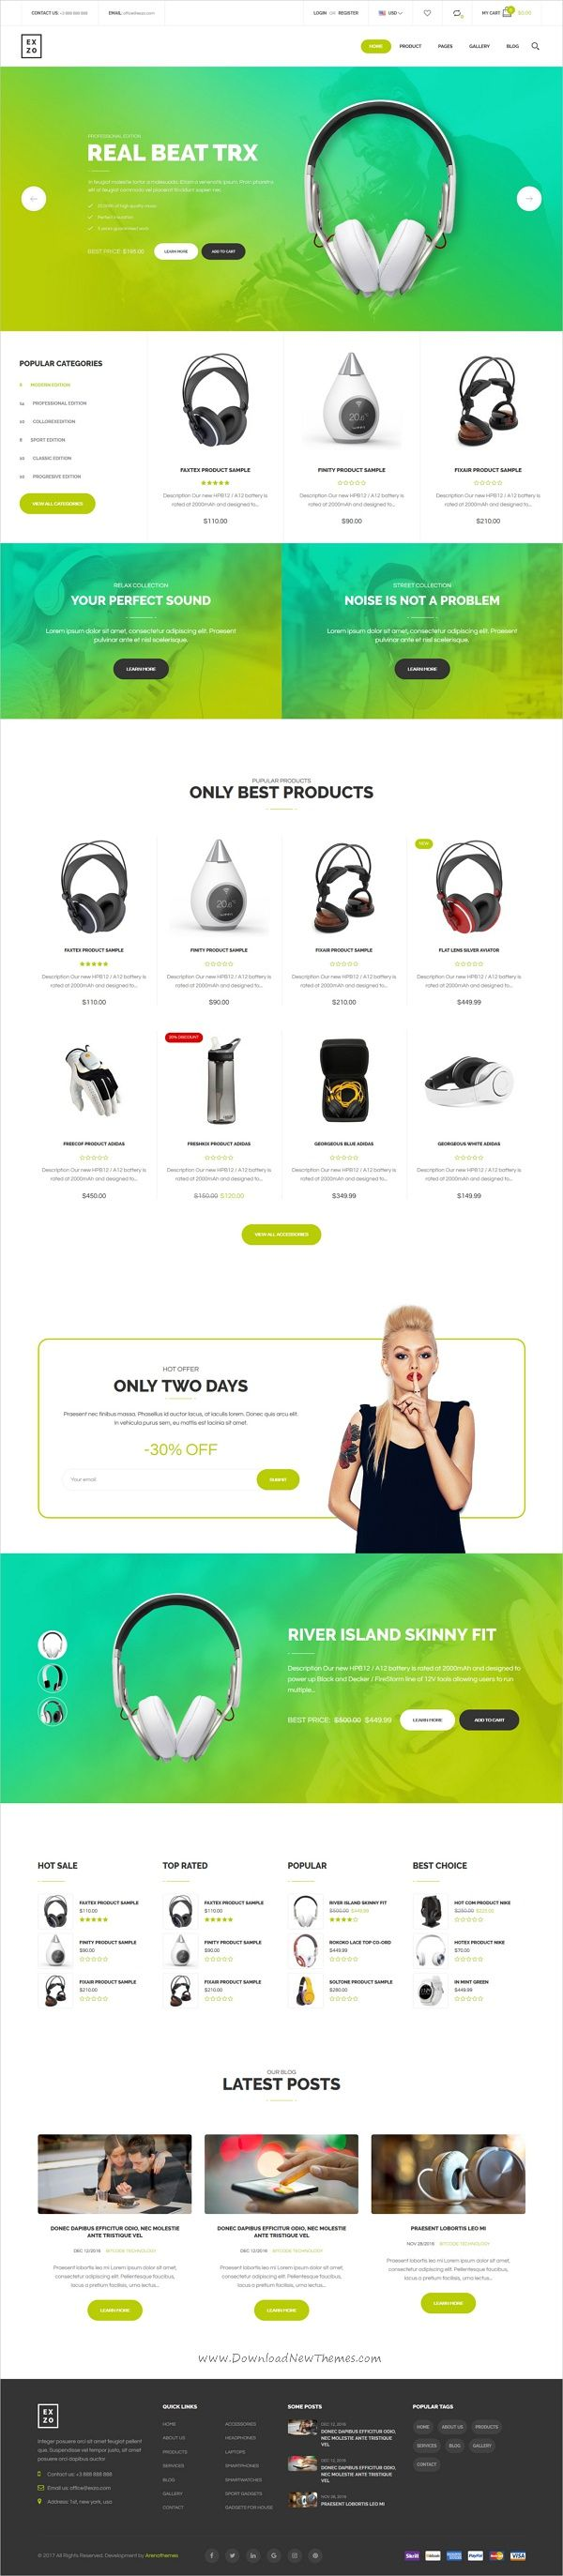 Exzo is a modern and elegant design 7in1 #Shopify theme for #electronics #store stunning eCommerce websites download now➩ https://themeforest.net/item/modern-electronics-ecommerce-shopify-theme-exzo/19340393?ref=Datasata